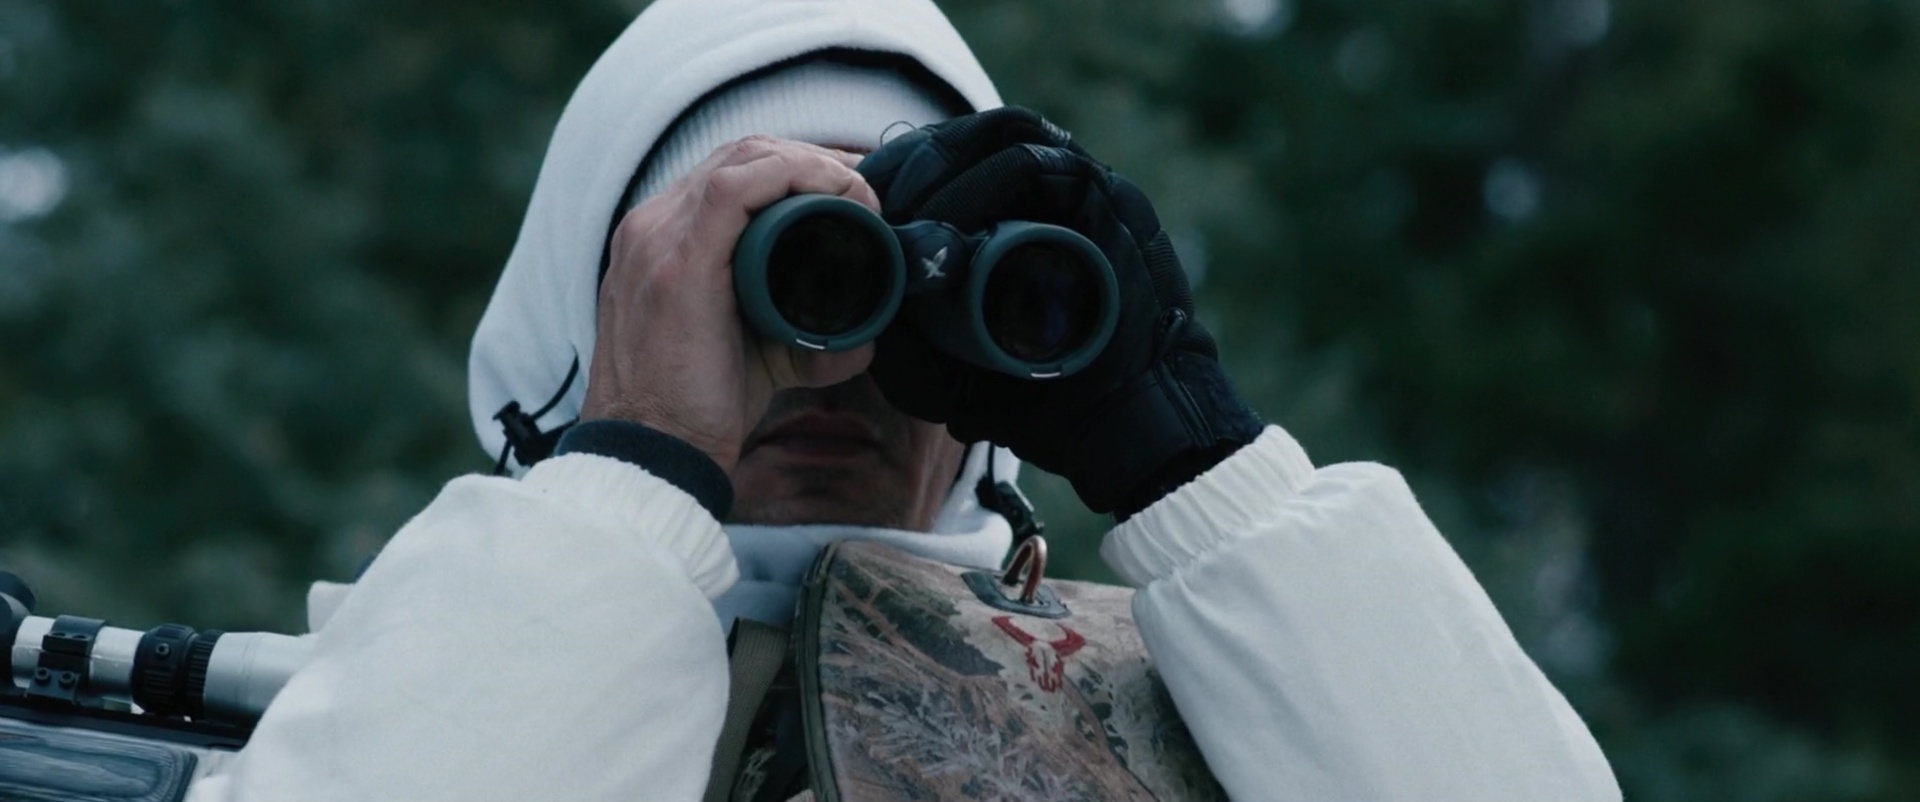 Fast And Furious 3 Full Movie >> Swarovski Binocular Used by Jeremy Renner in Wind River ...